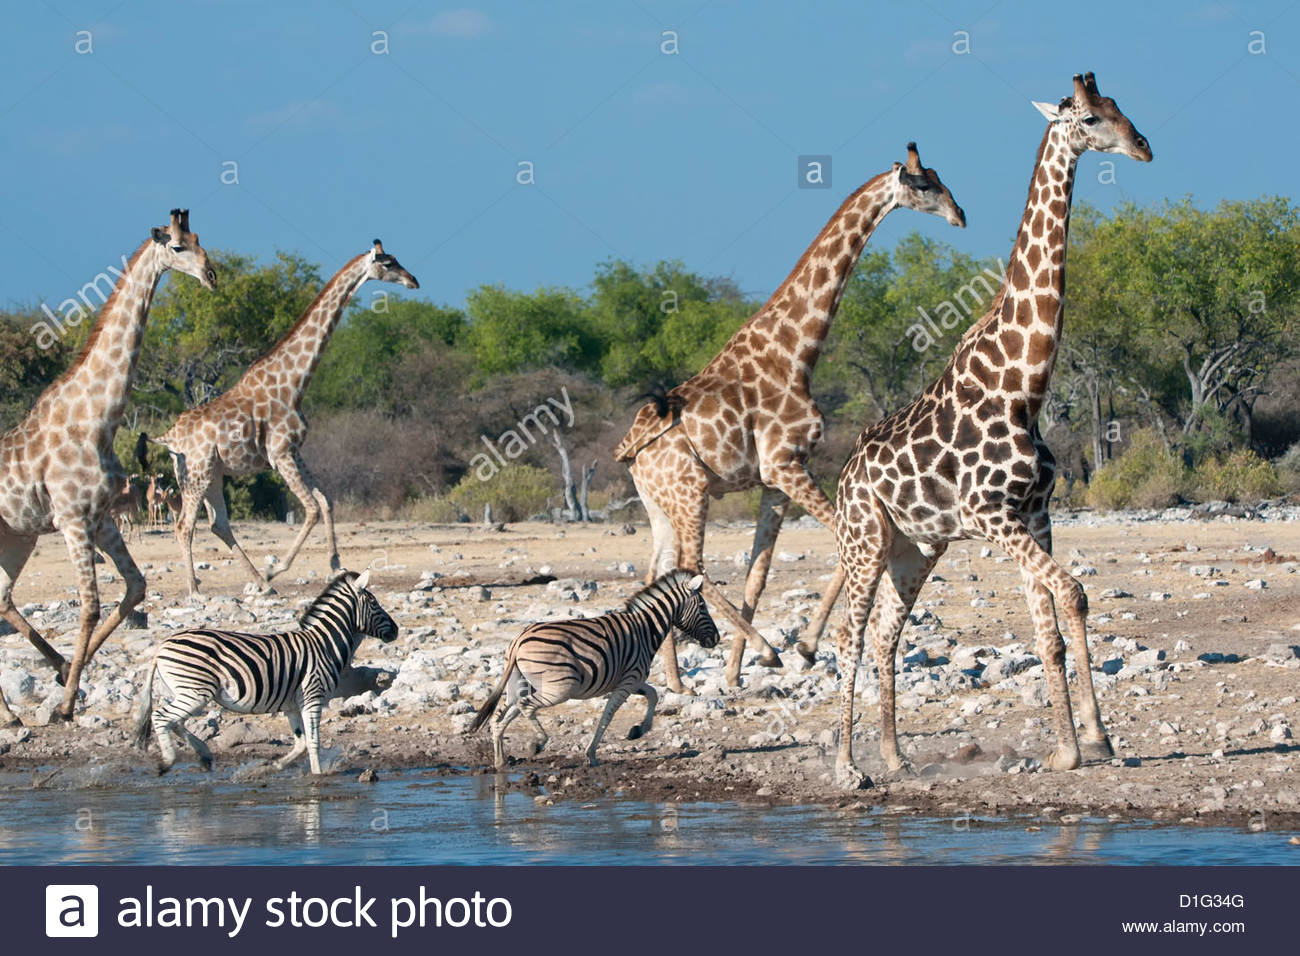 Giraffe (Giraffa camelopardis) and zebras (Equus burchelli) moving away from a waterhole, Etosha National Park, - Stock Image